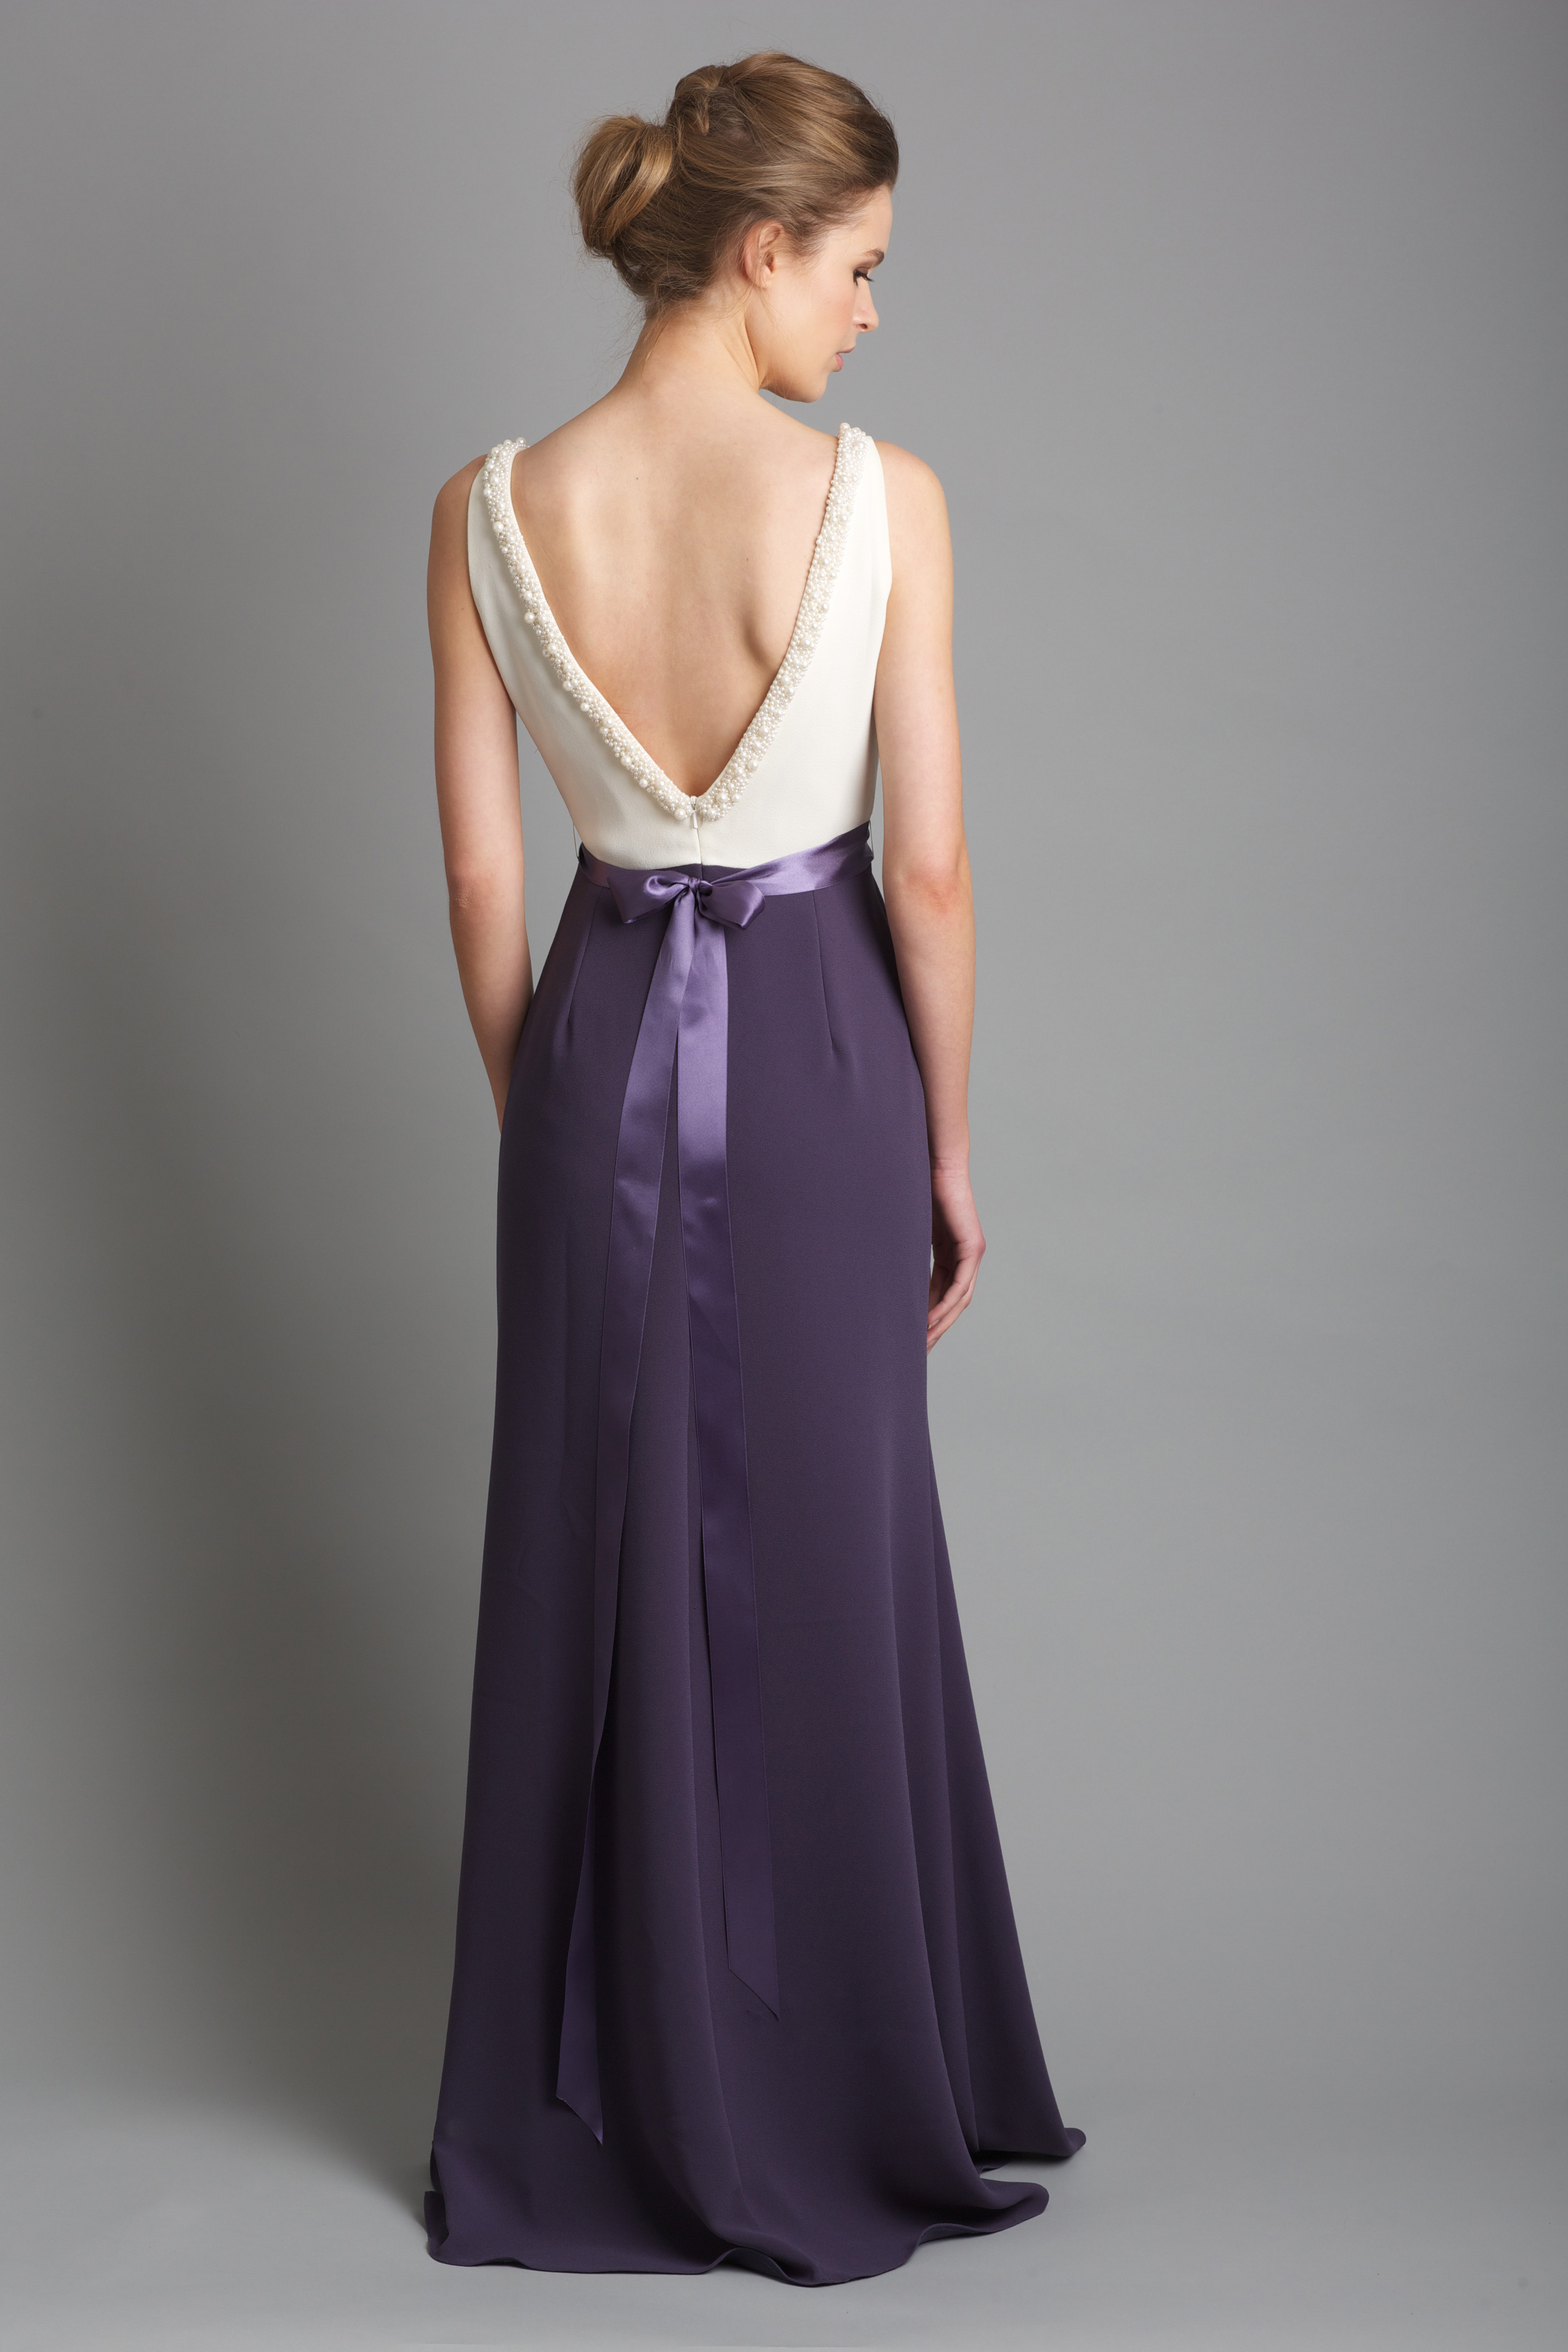 964792aef3767 3DC1188 two tone dress. €325.00. All Dresscode bridesmaid made to order  dresses ...